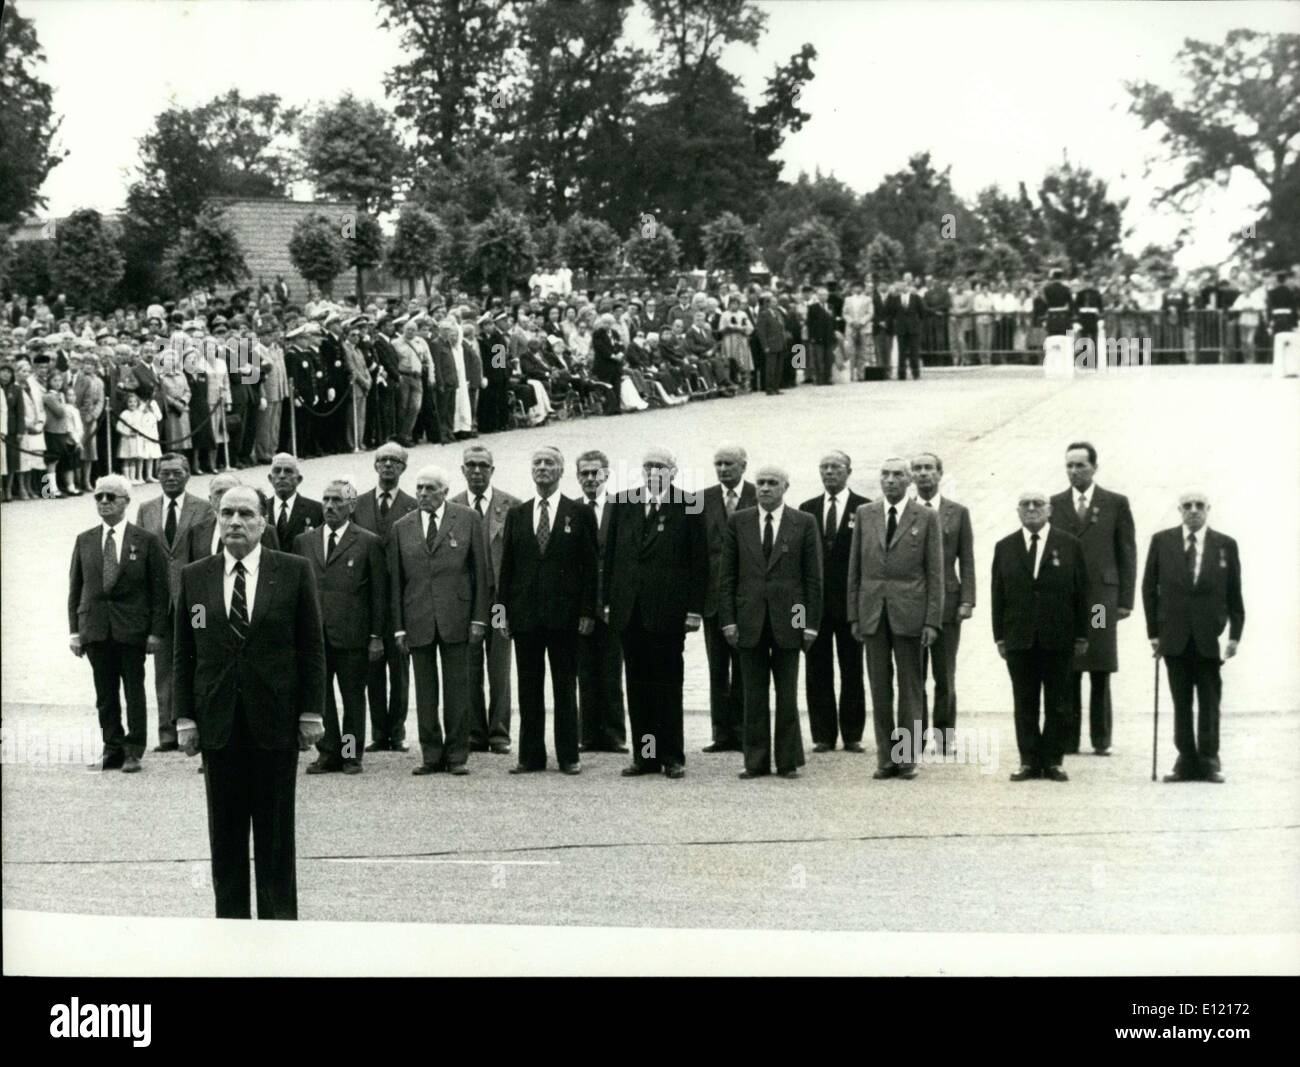 Jun. 19, 1981 - Mitterrand hosted the ceremonies for the June 18 Appeal's 41st anniversary at Mount Valerien. K - Stock Image